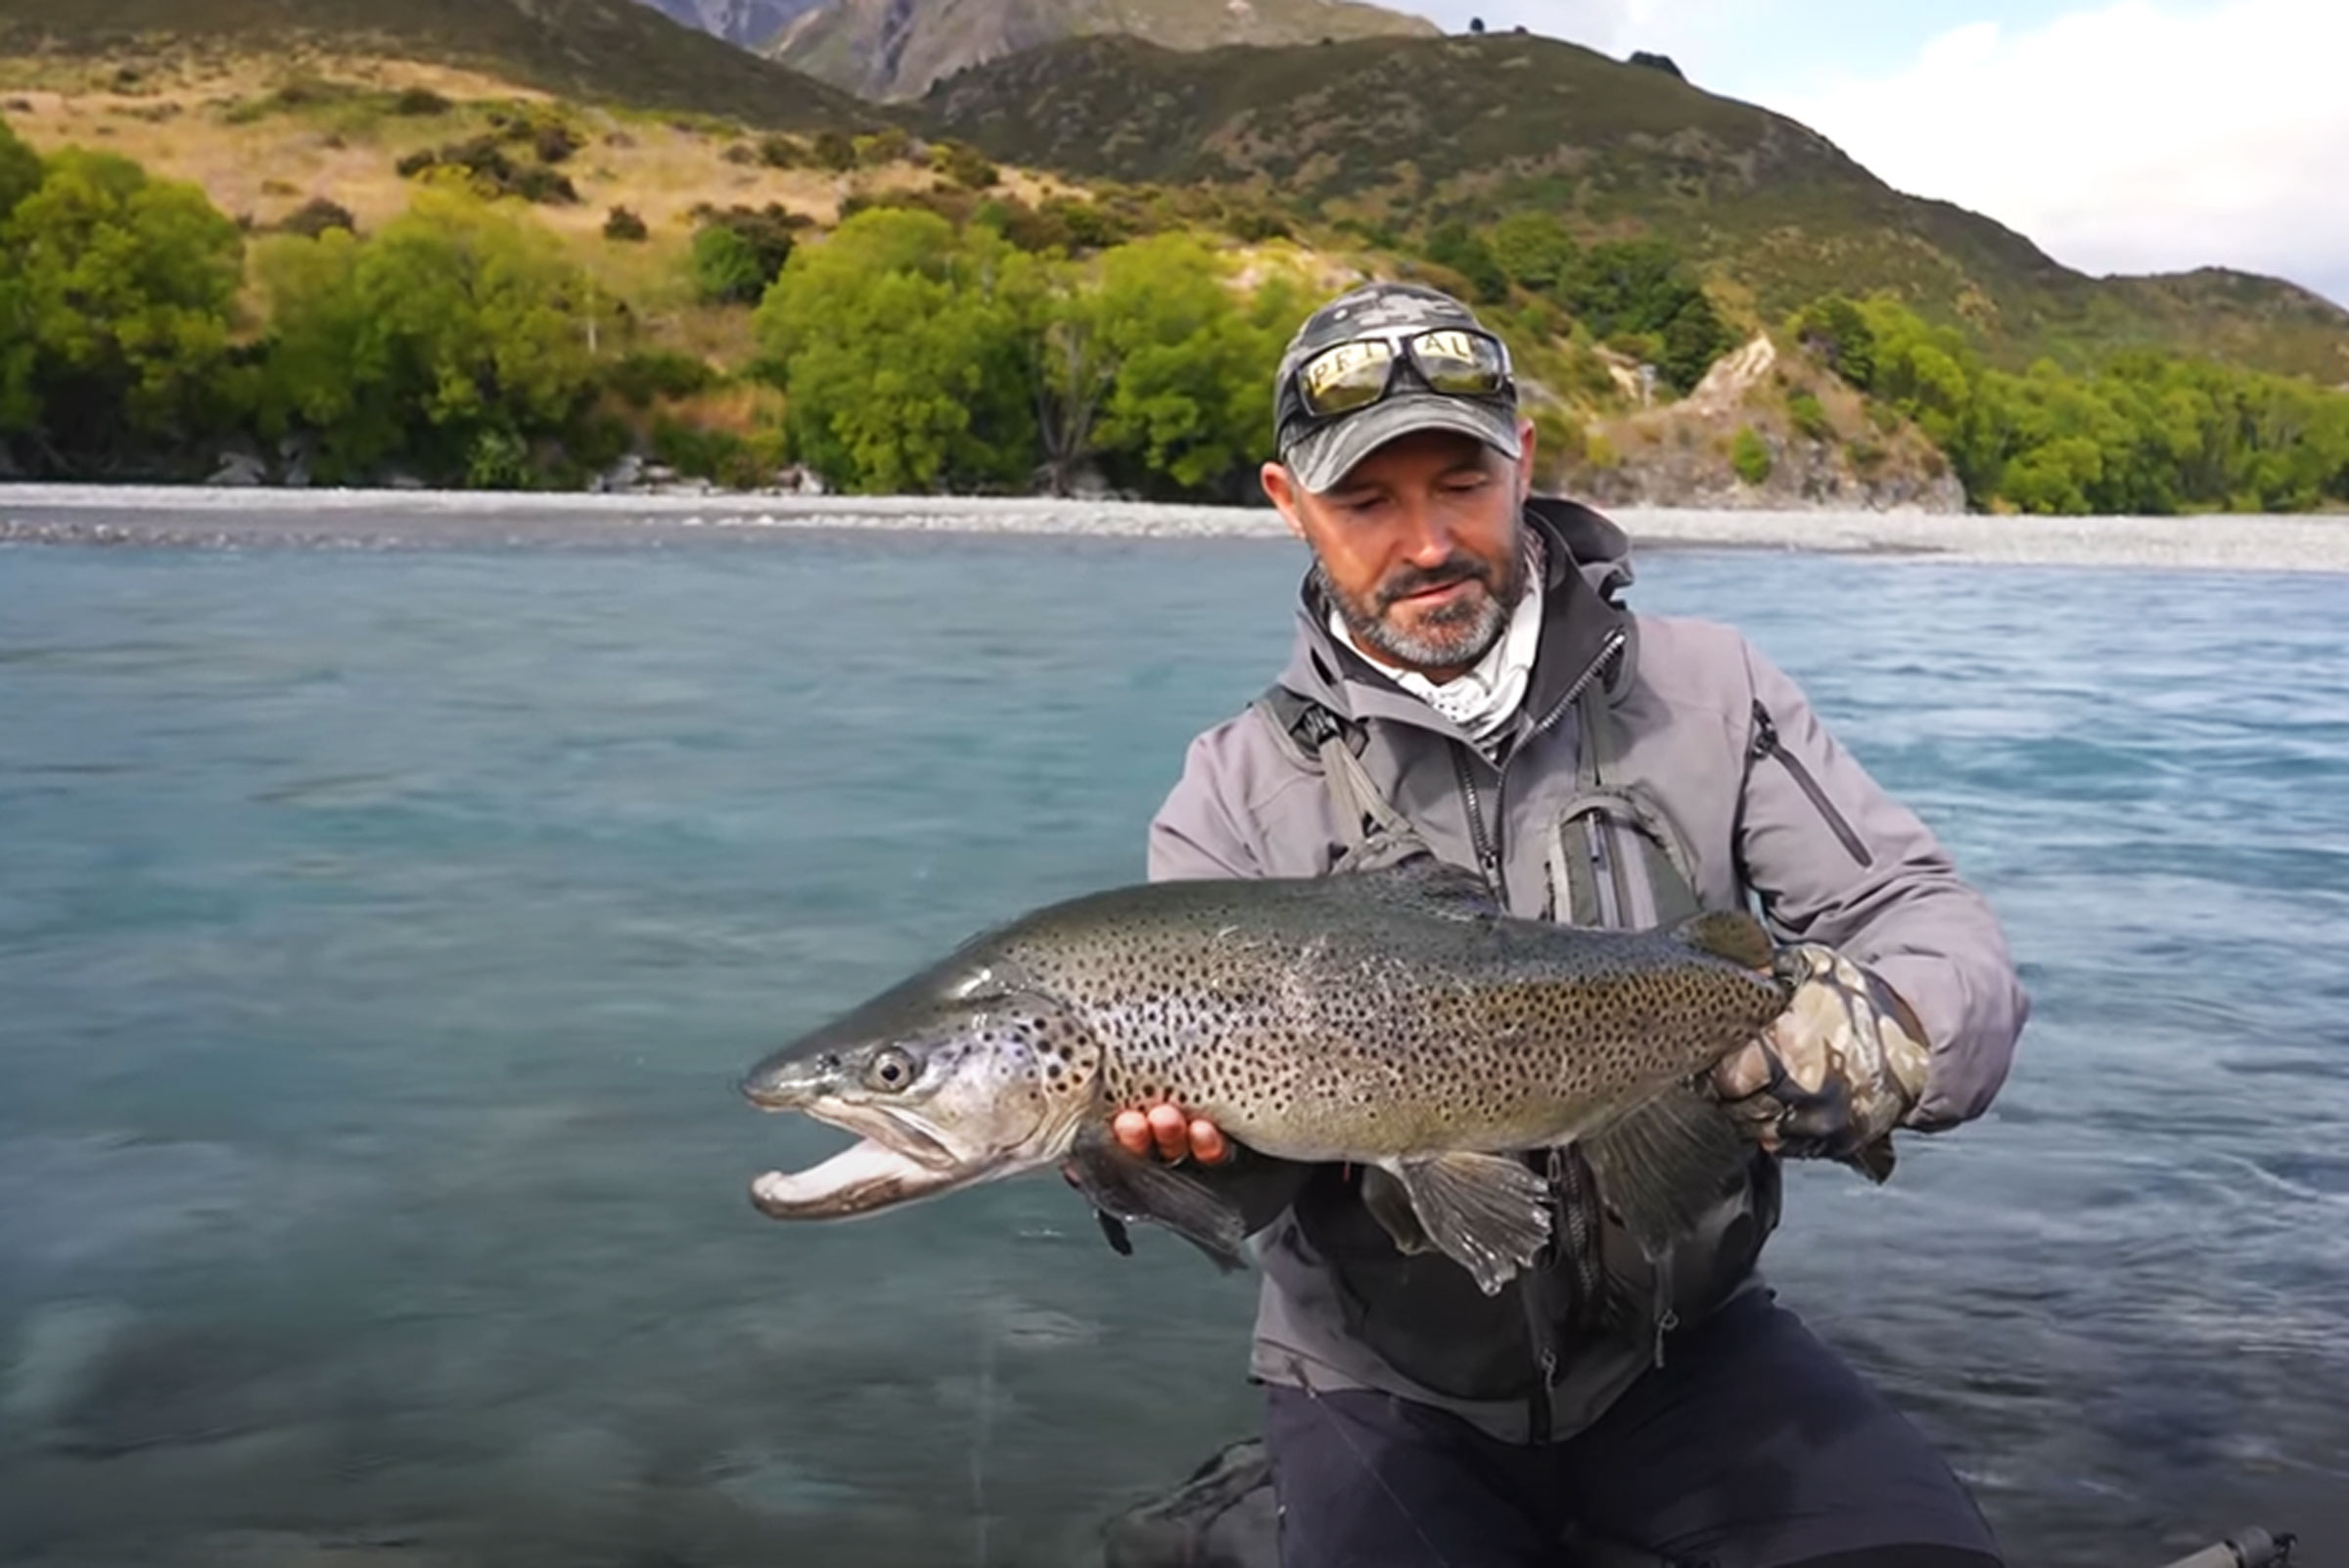 Testing the Scott Centric #5 and #6 weight rods on big South Island Browns